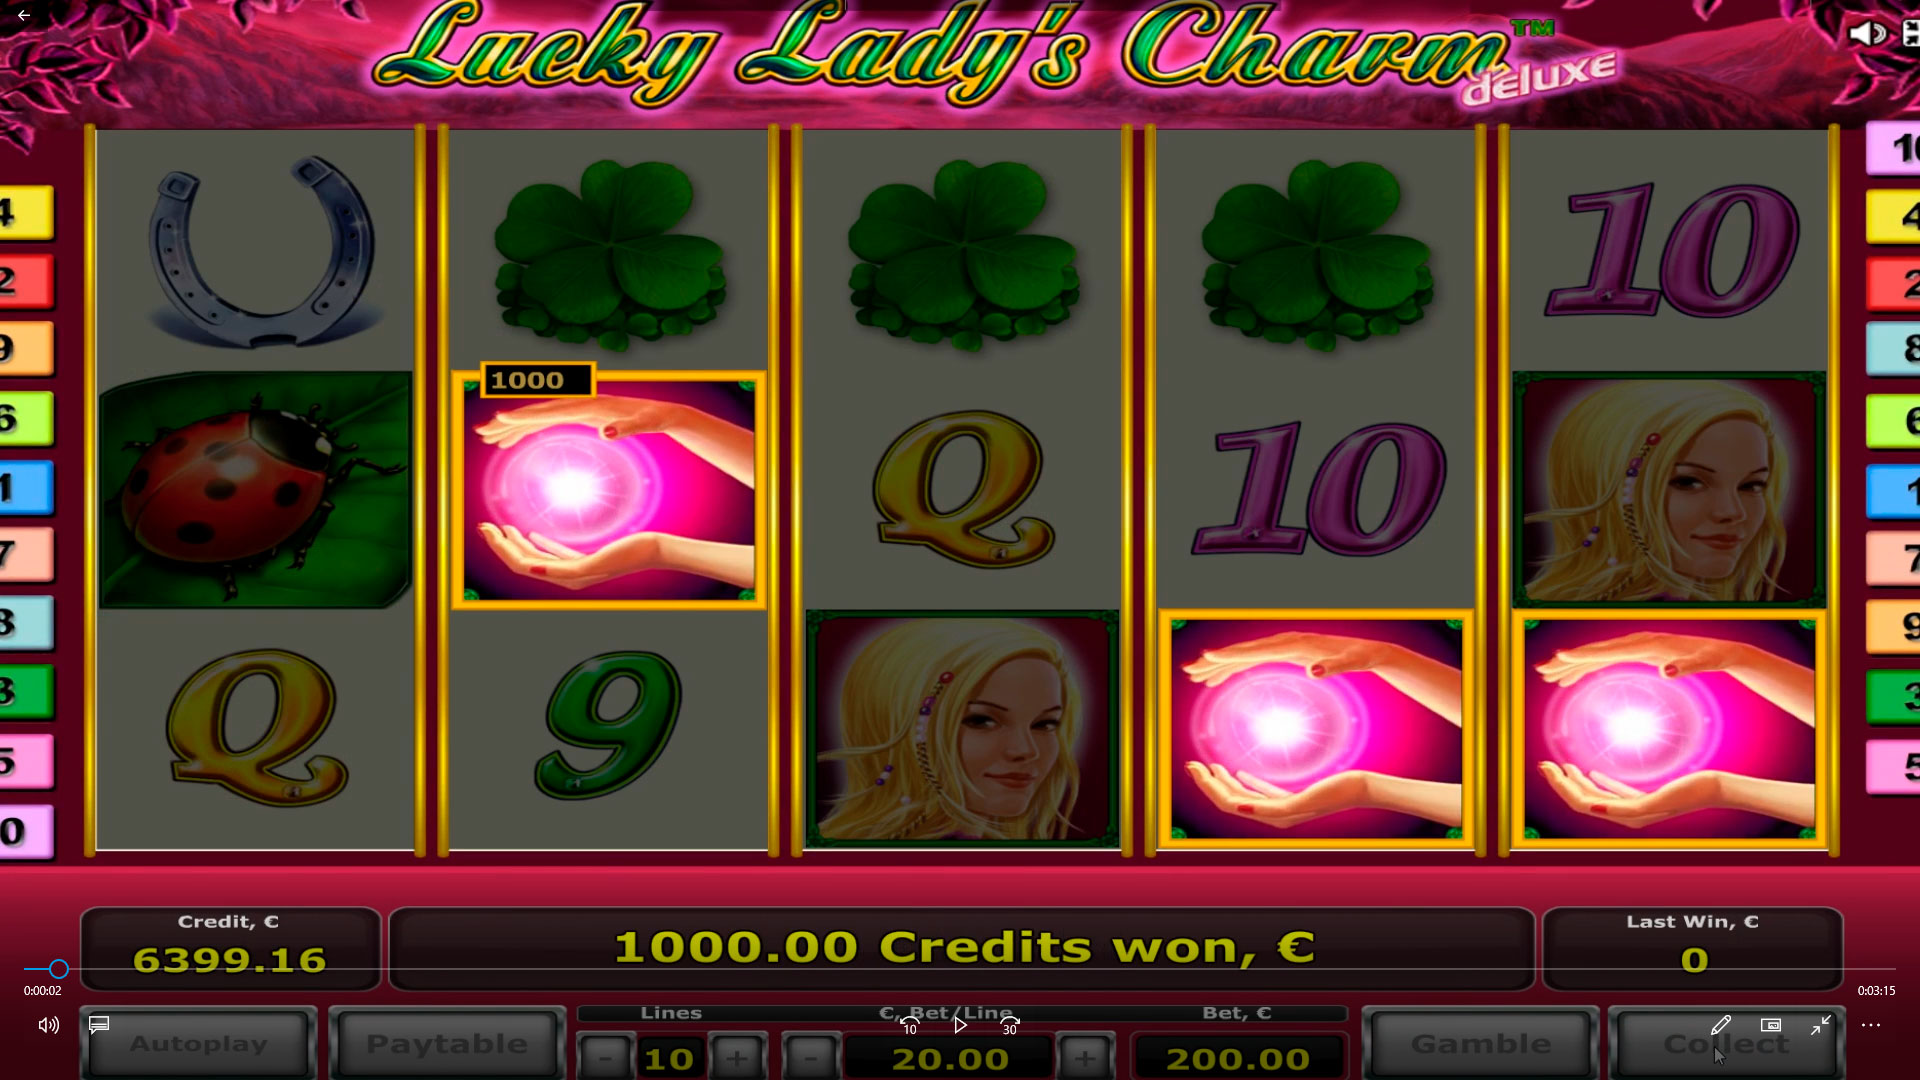 Lucky lady's charm big win €21.000